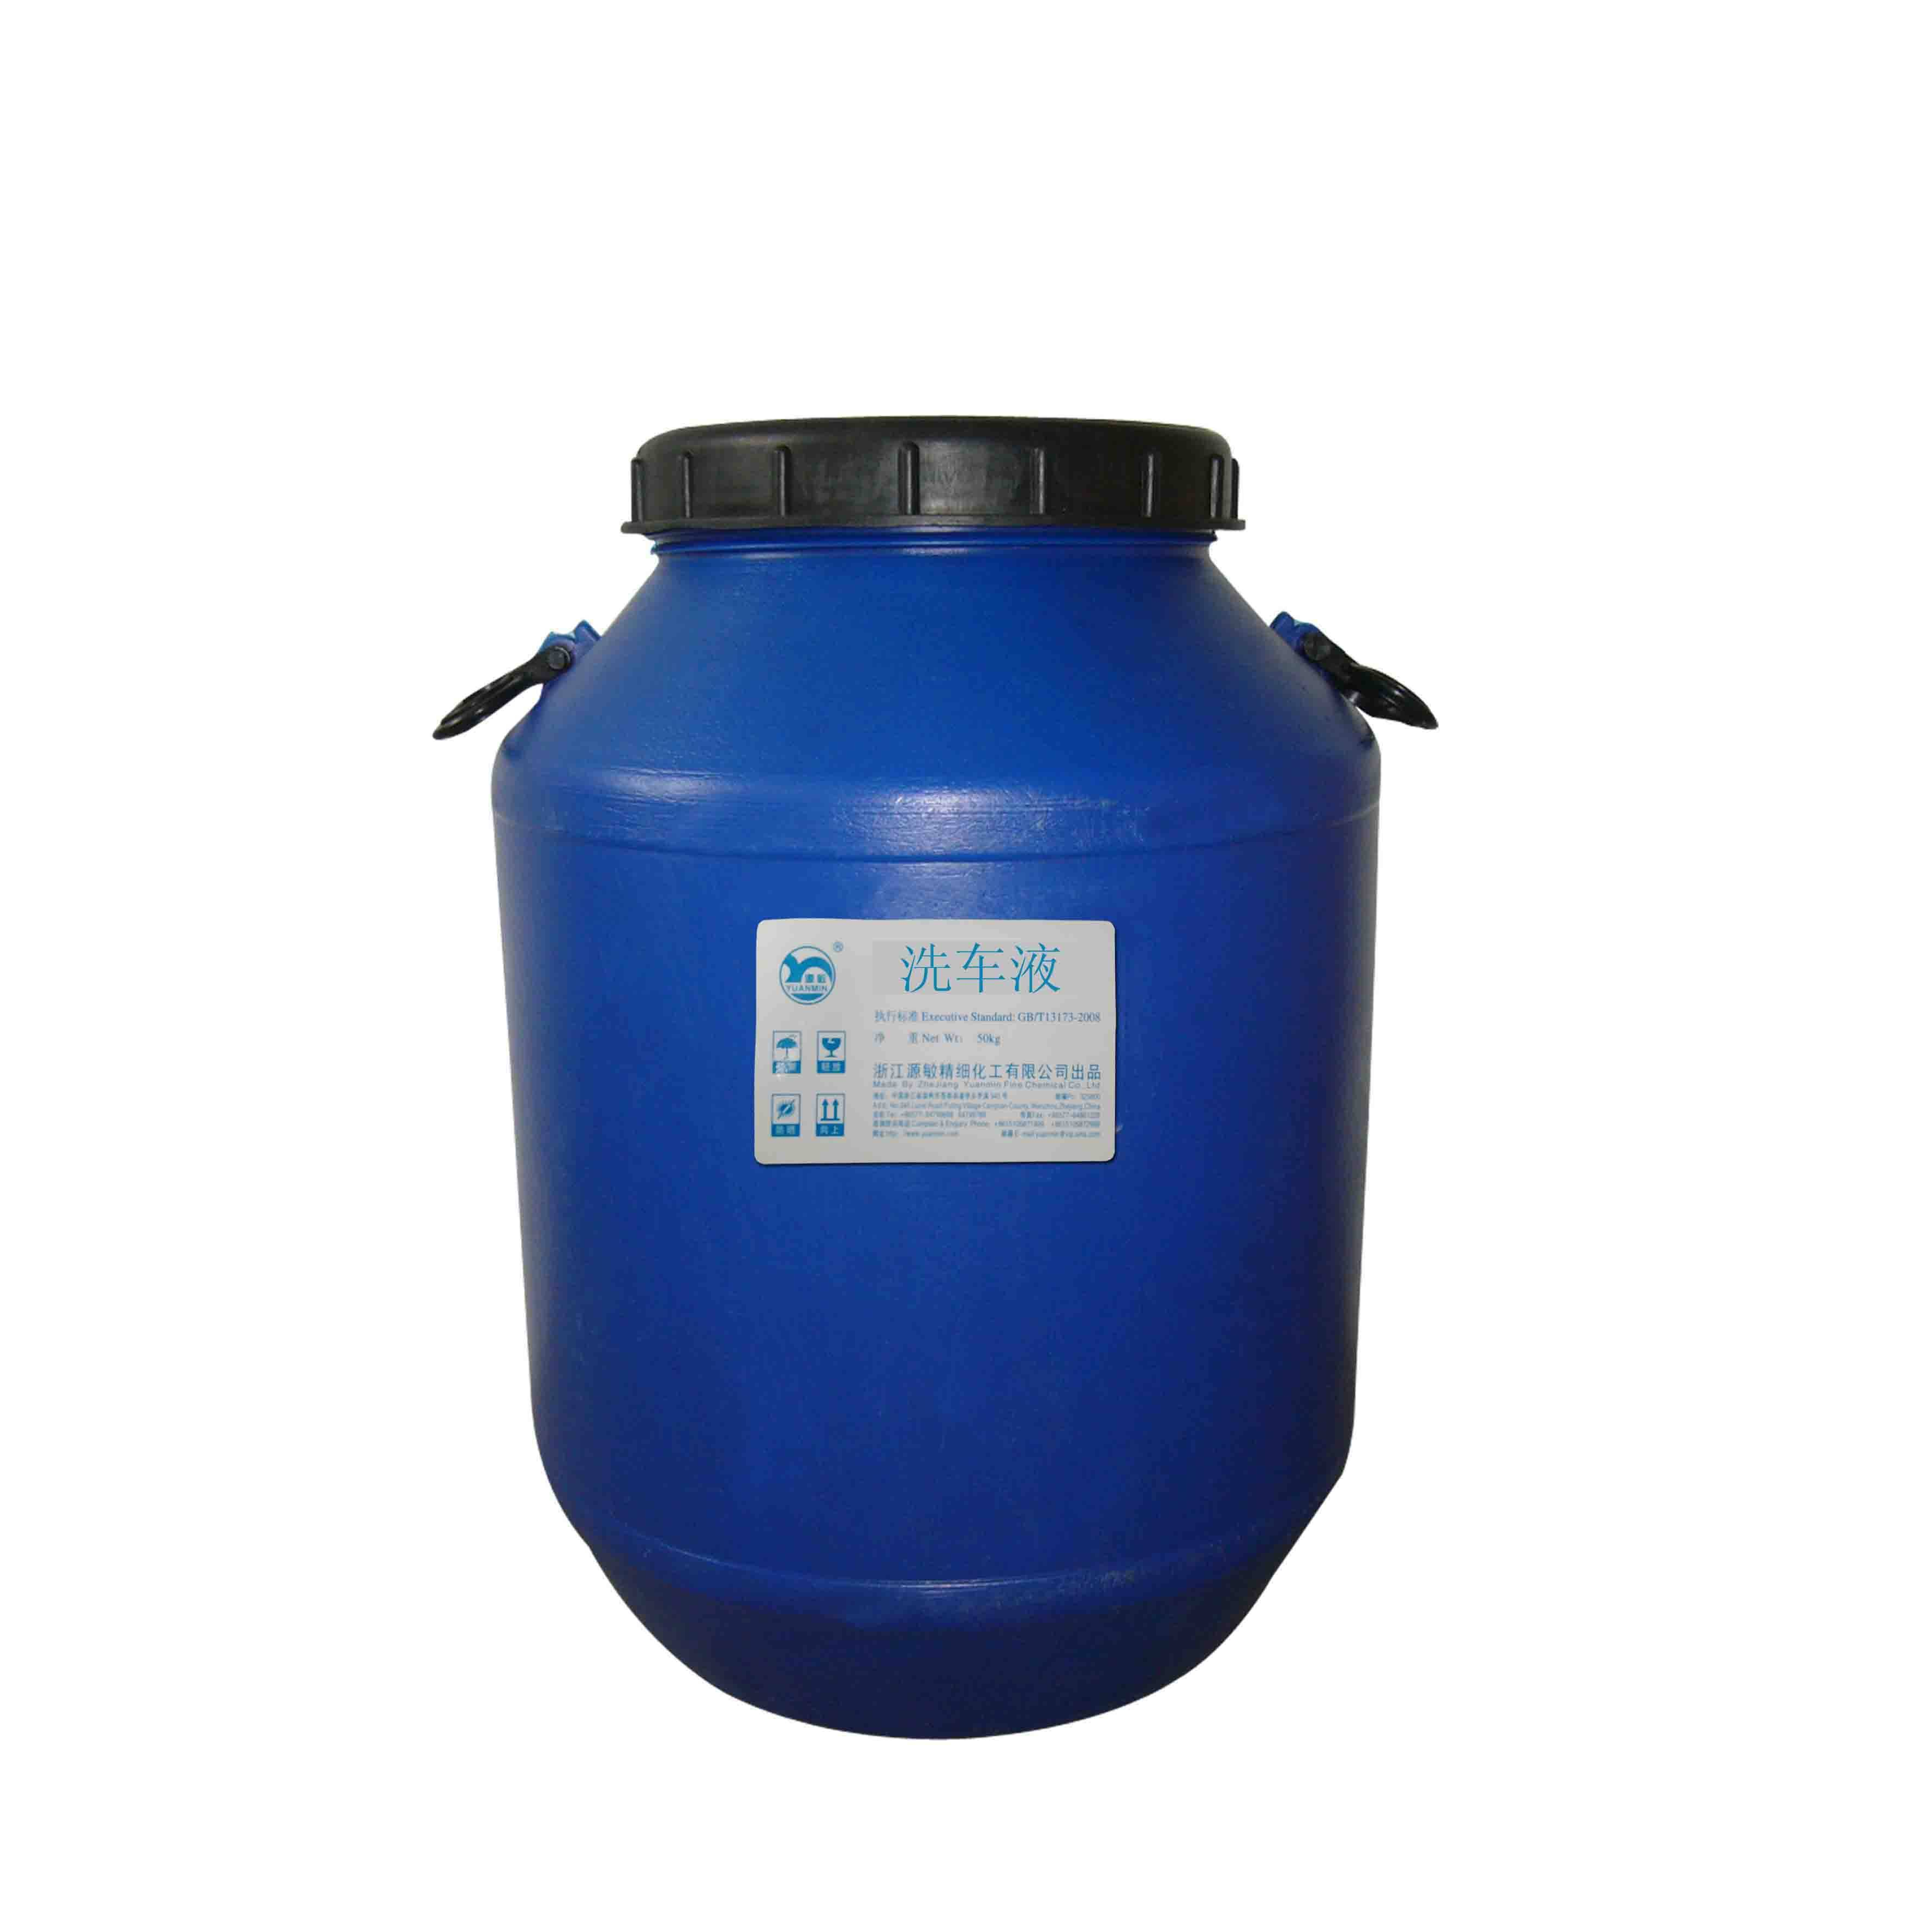 Car Wash Liquid Raw Material, Concentrated Daily Chemicals; Accept OEM